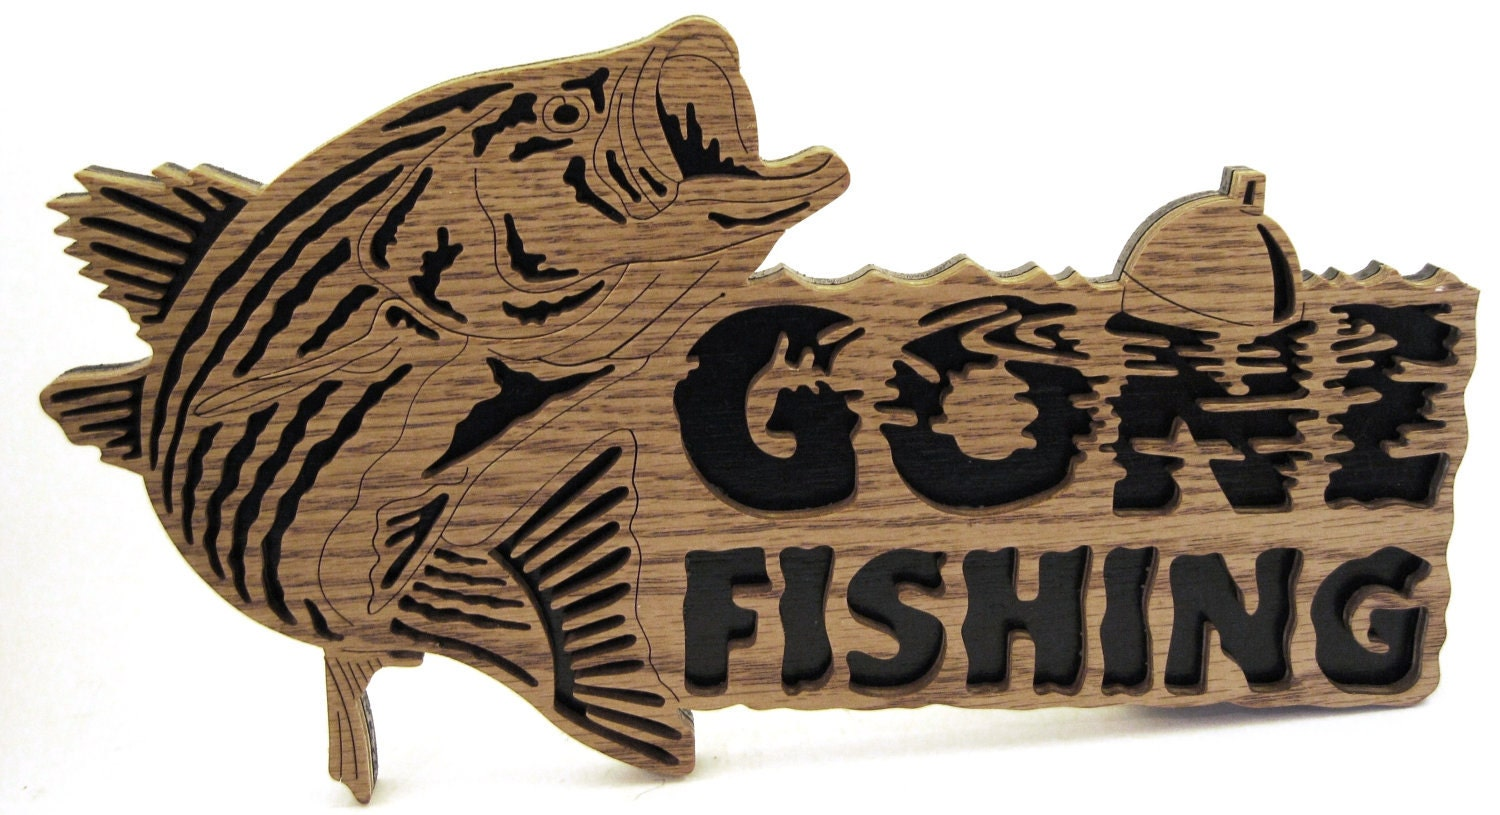 Gone fishing bass sign scroll saw cut5fr for Gone fishing sign